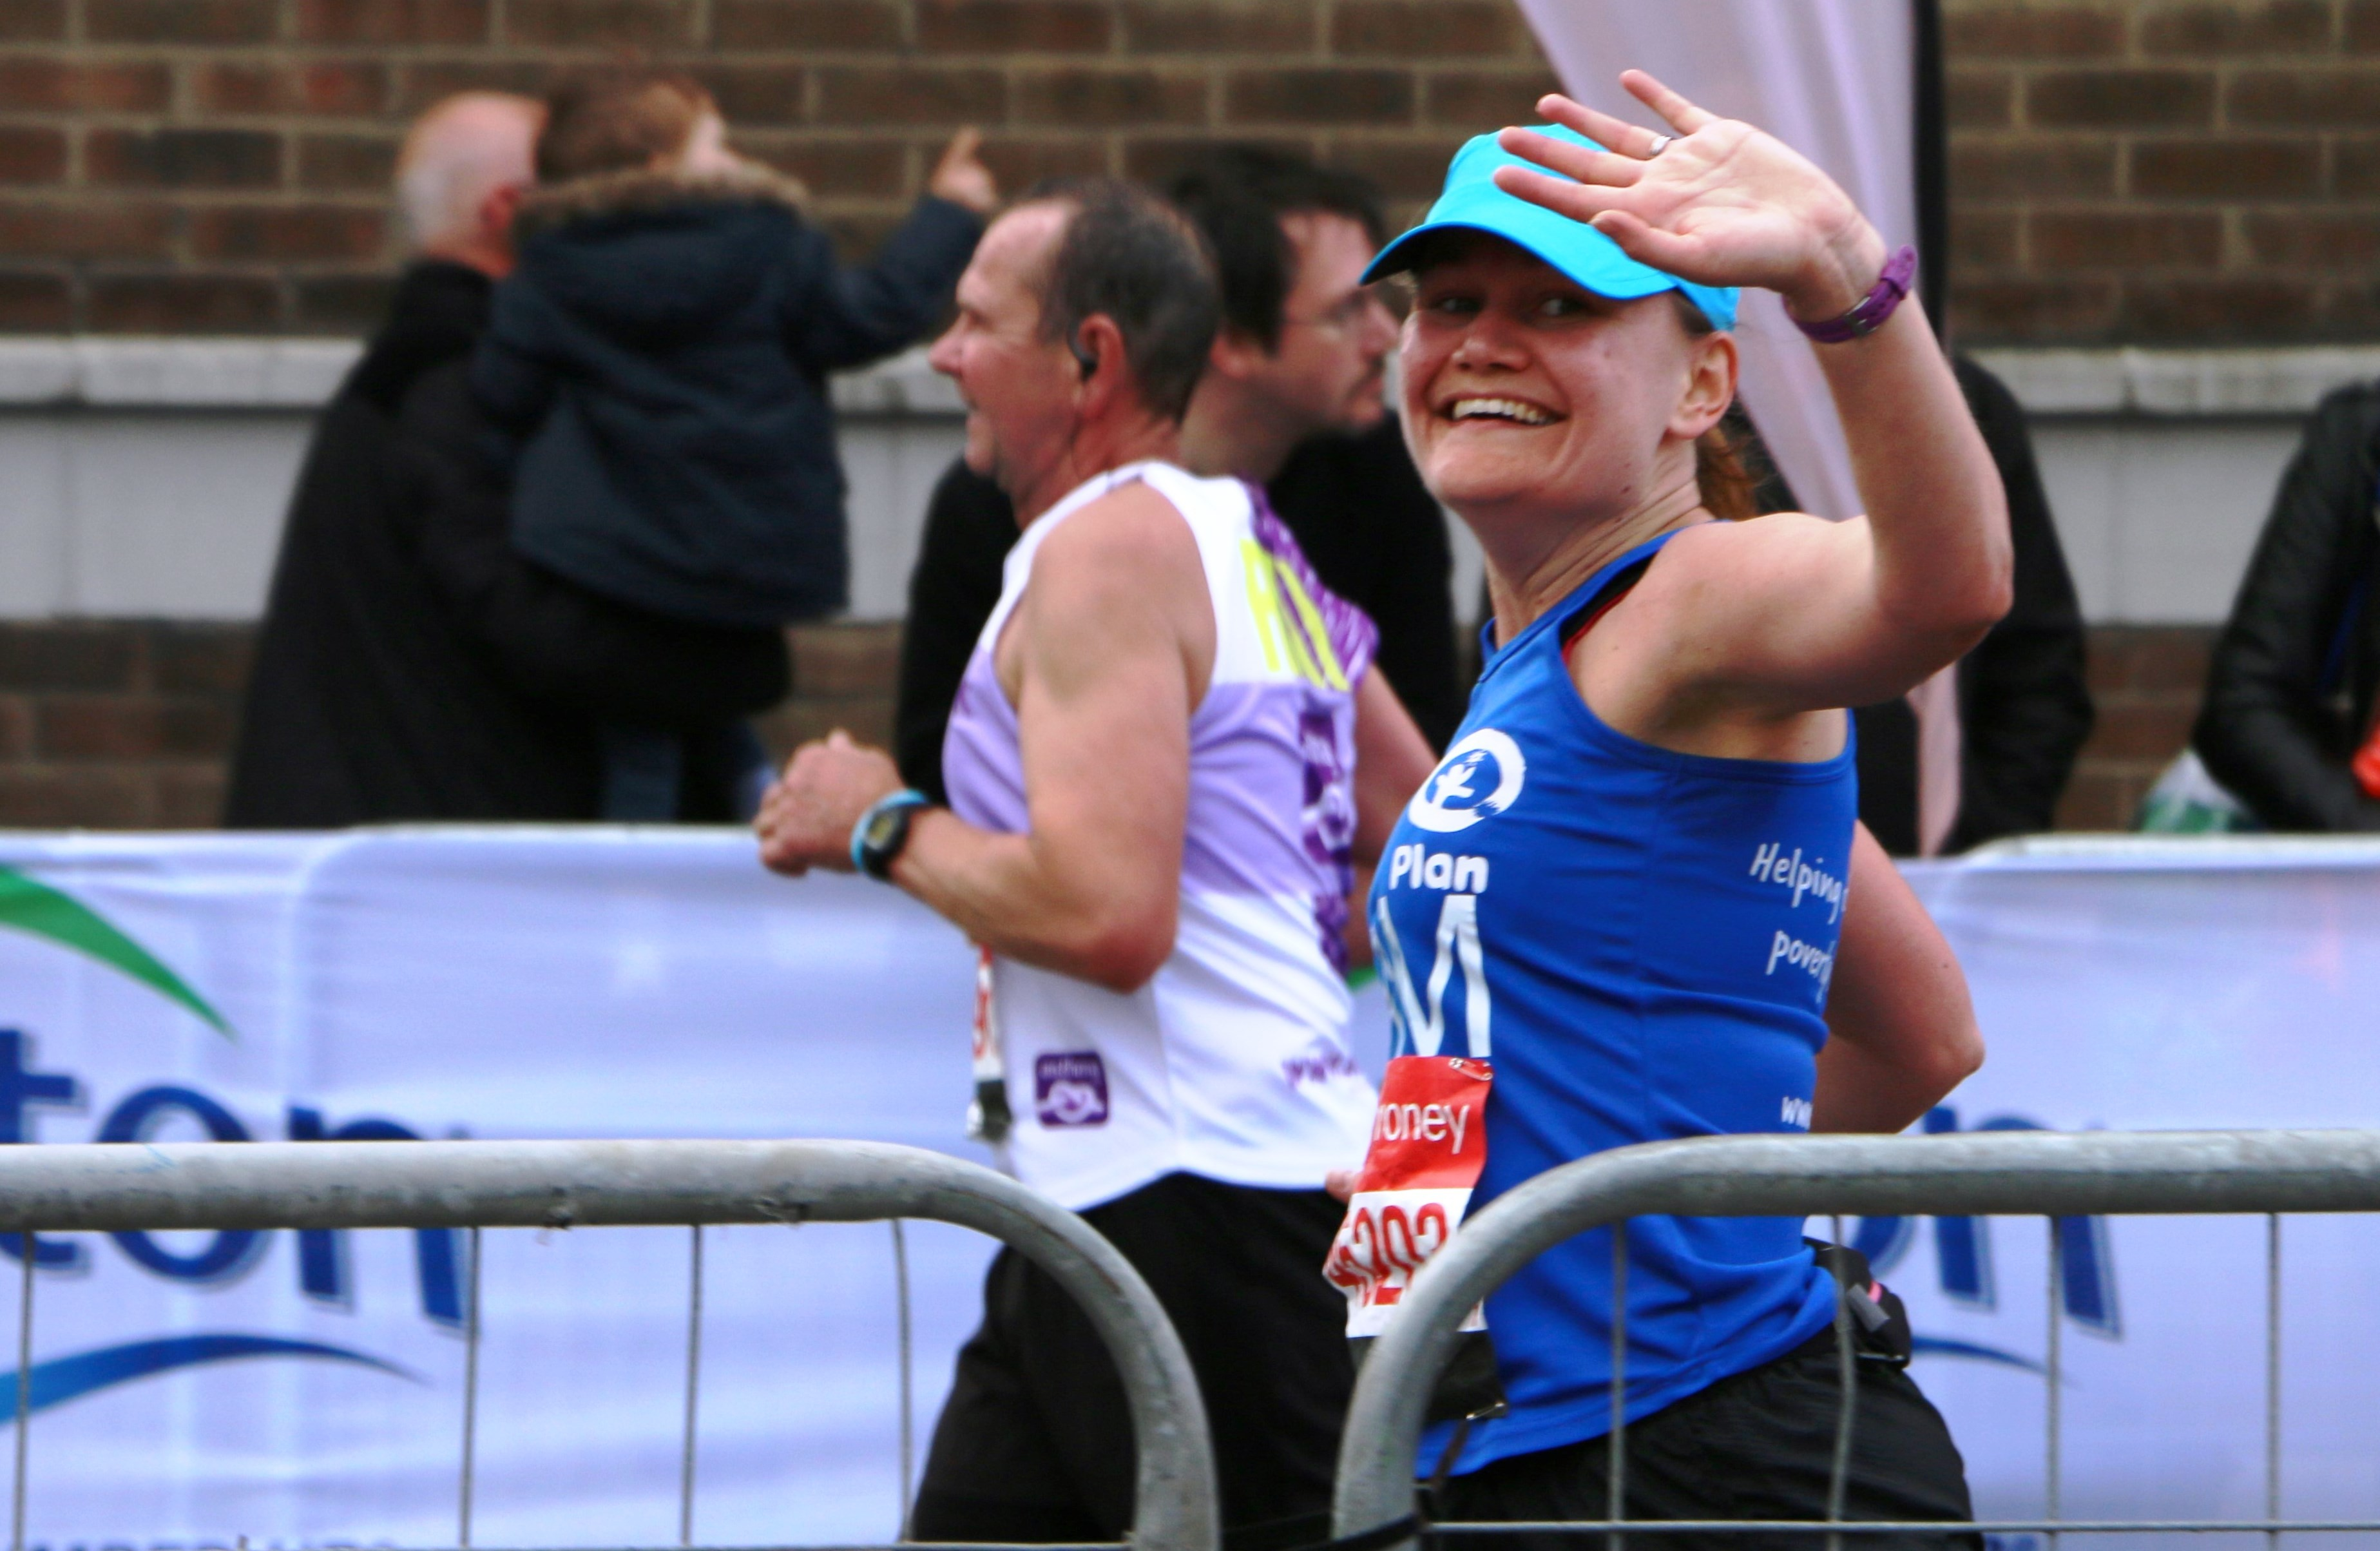 Tamsin, Plan International UK marathon runner